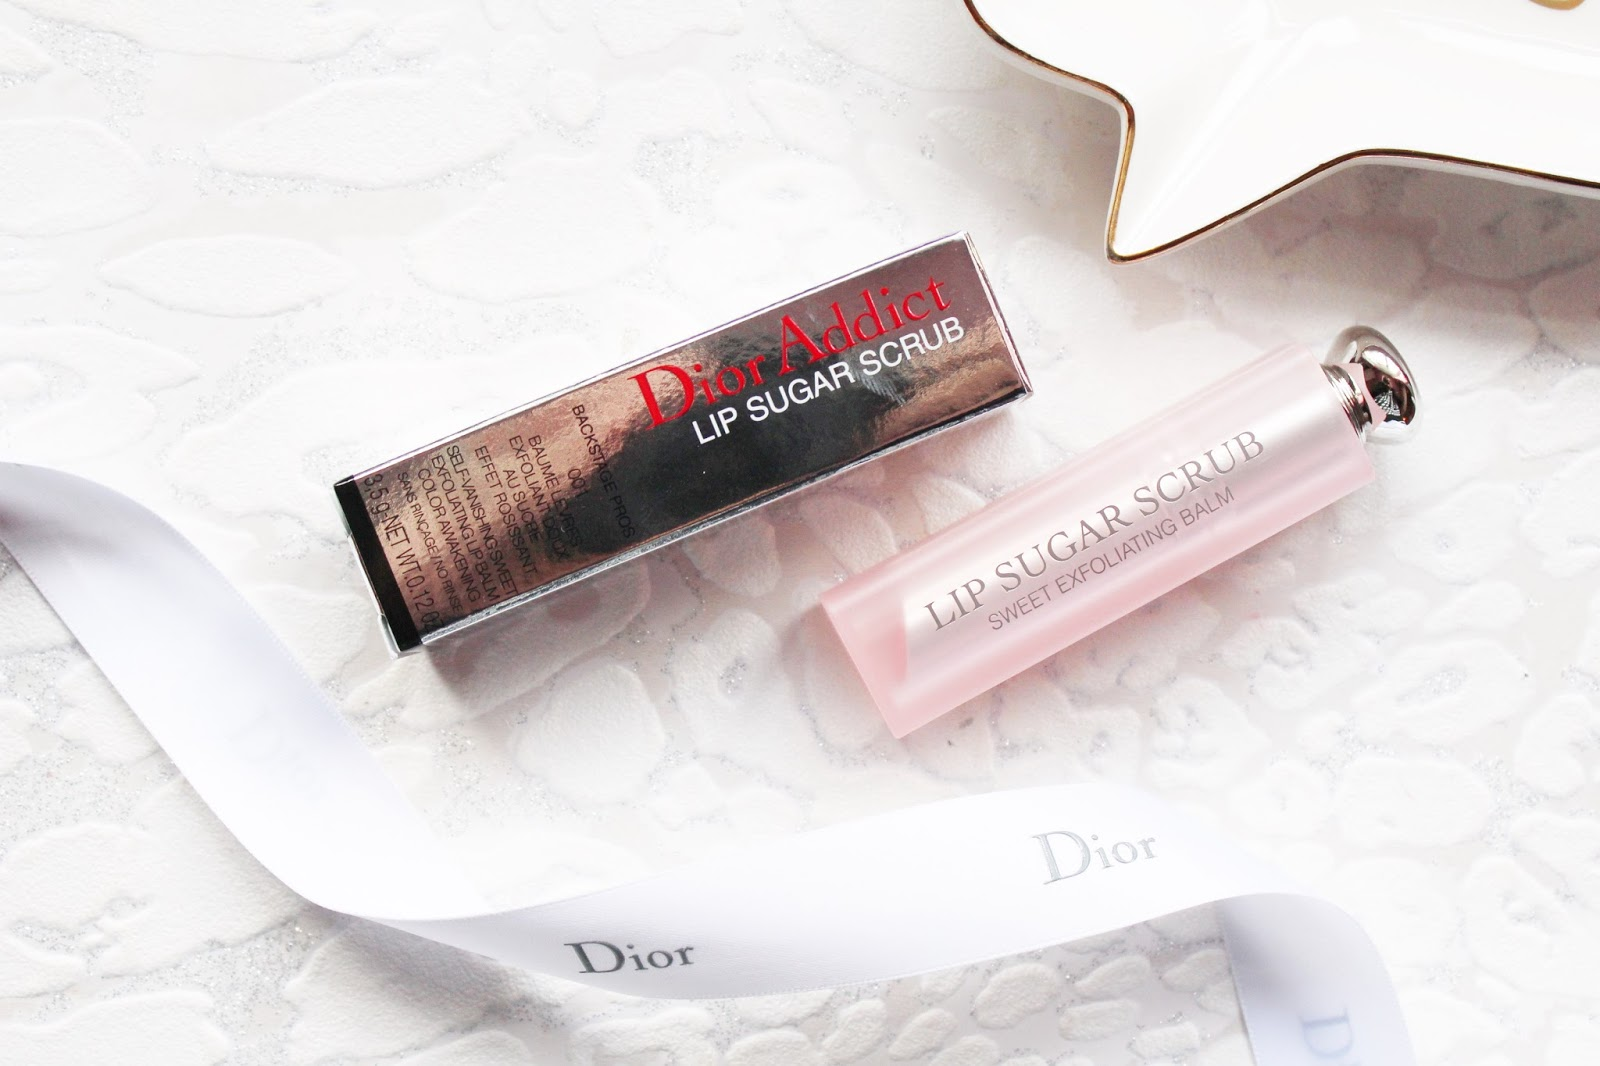 Dior Addict Lip Sugar Scrub